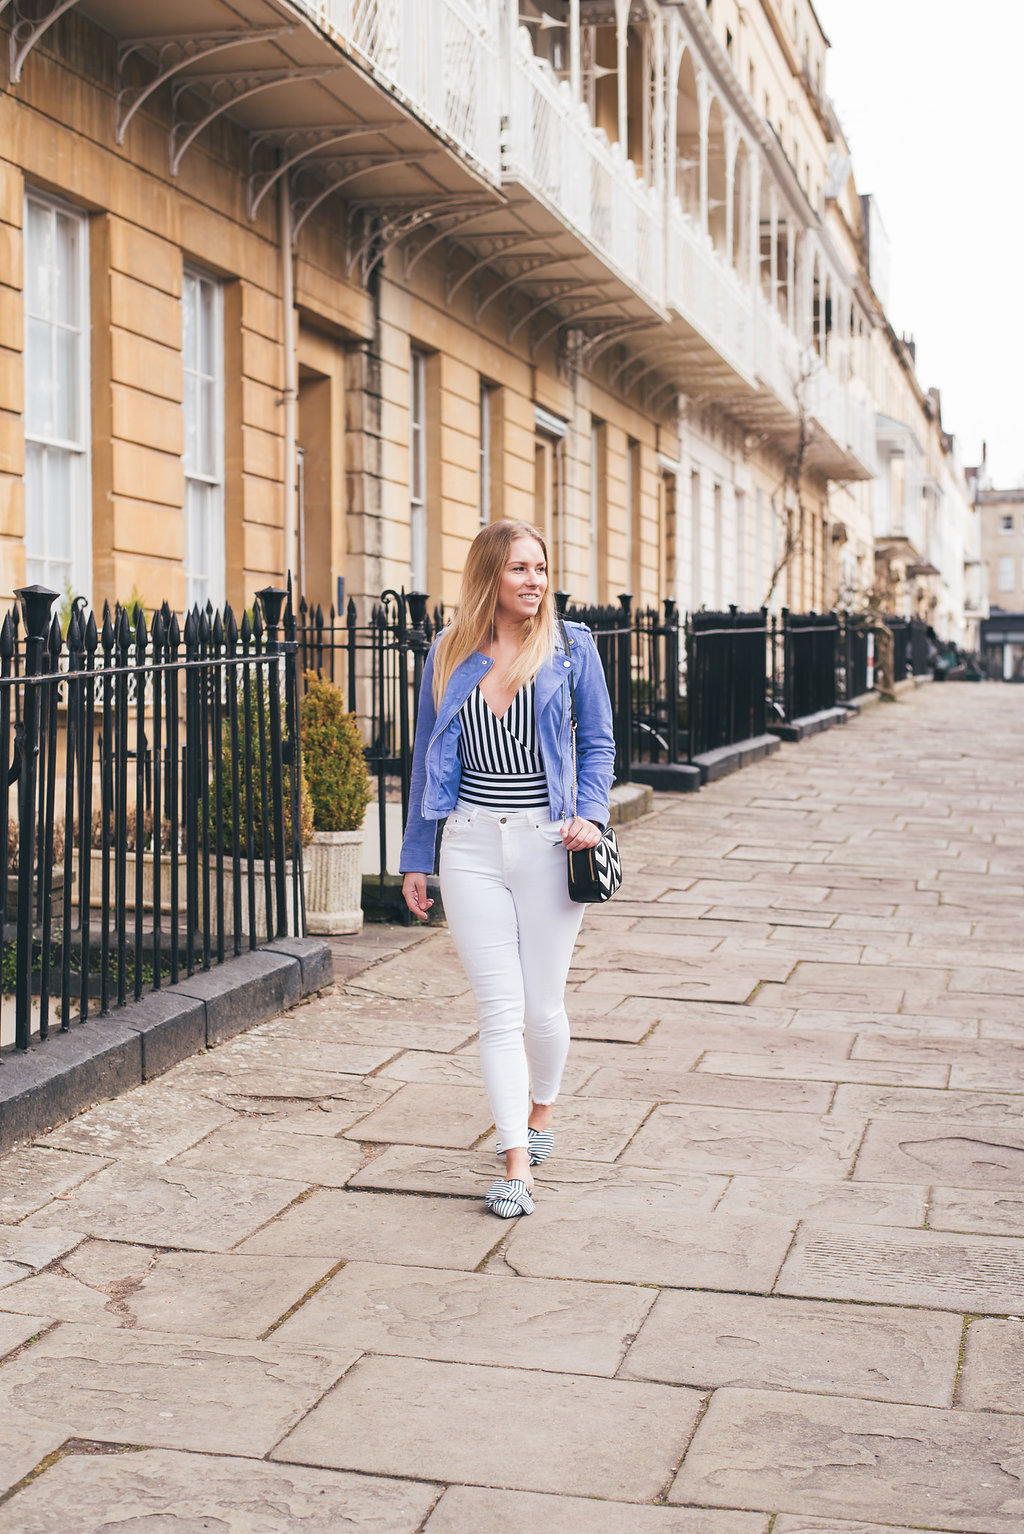 Striped outfit shot walking along the streets of bristol